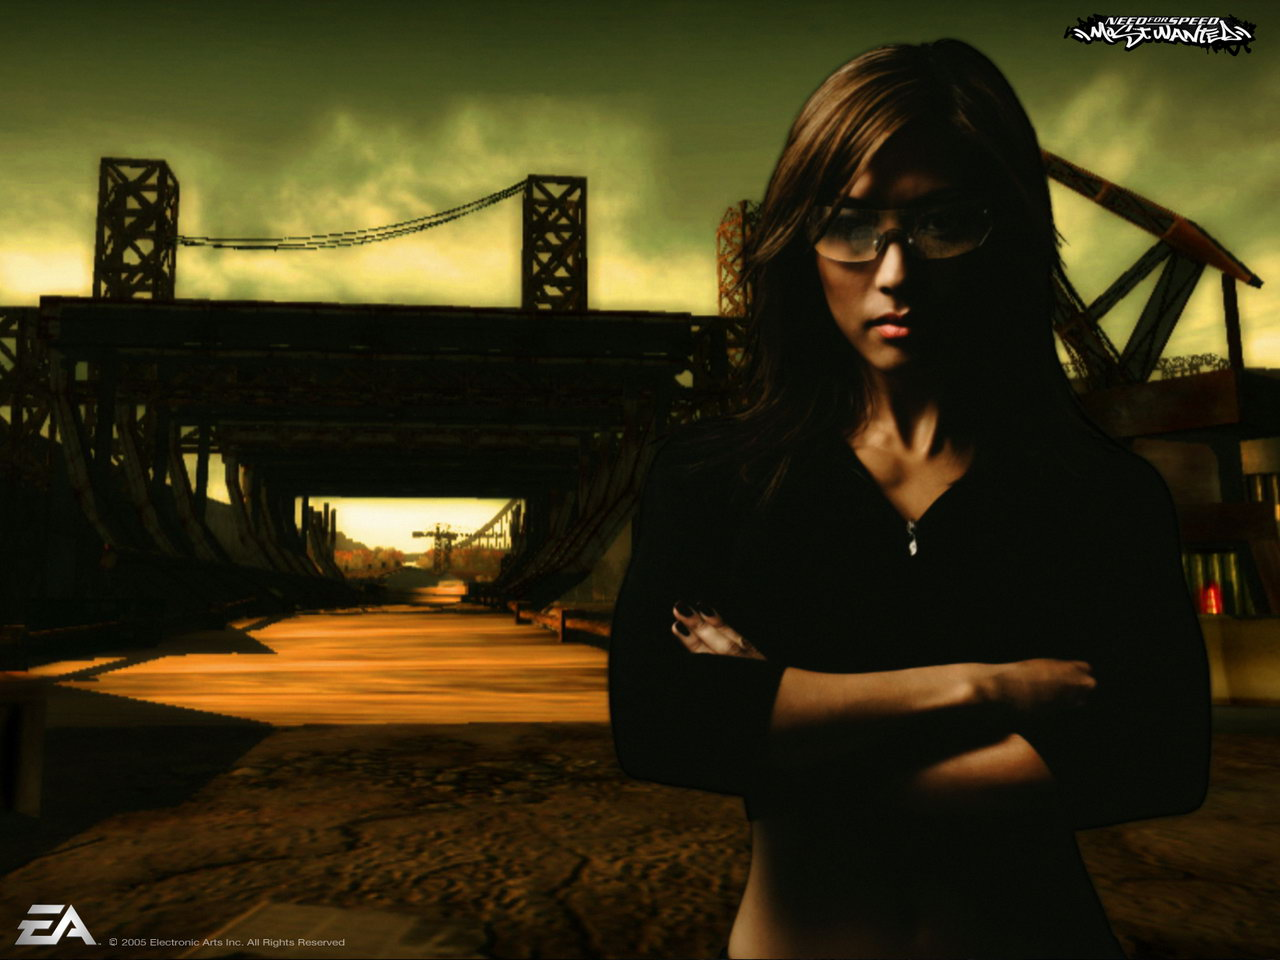 Free Download Girl 4 Need For Speed Most Wanted 1280x960 For